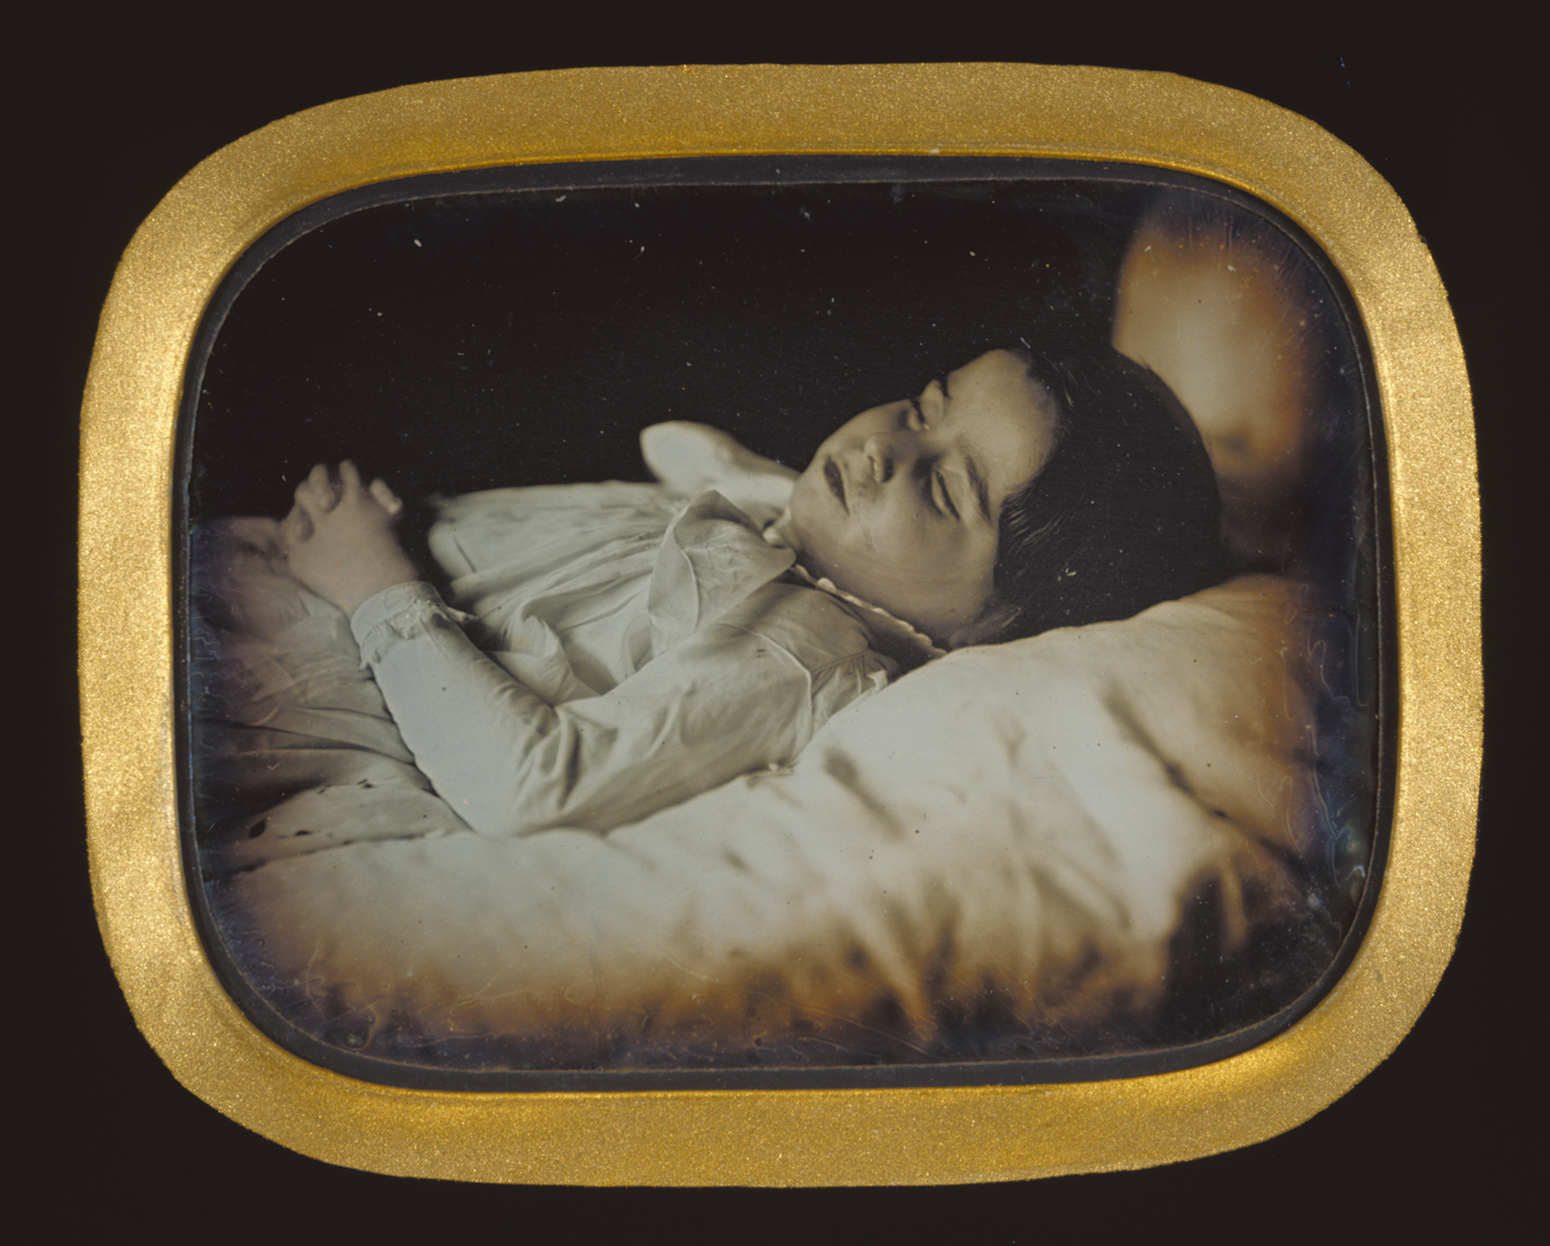 A post-mortem portrait of a child from the Getty Museum collection.